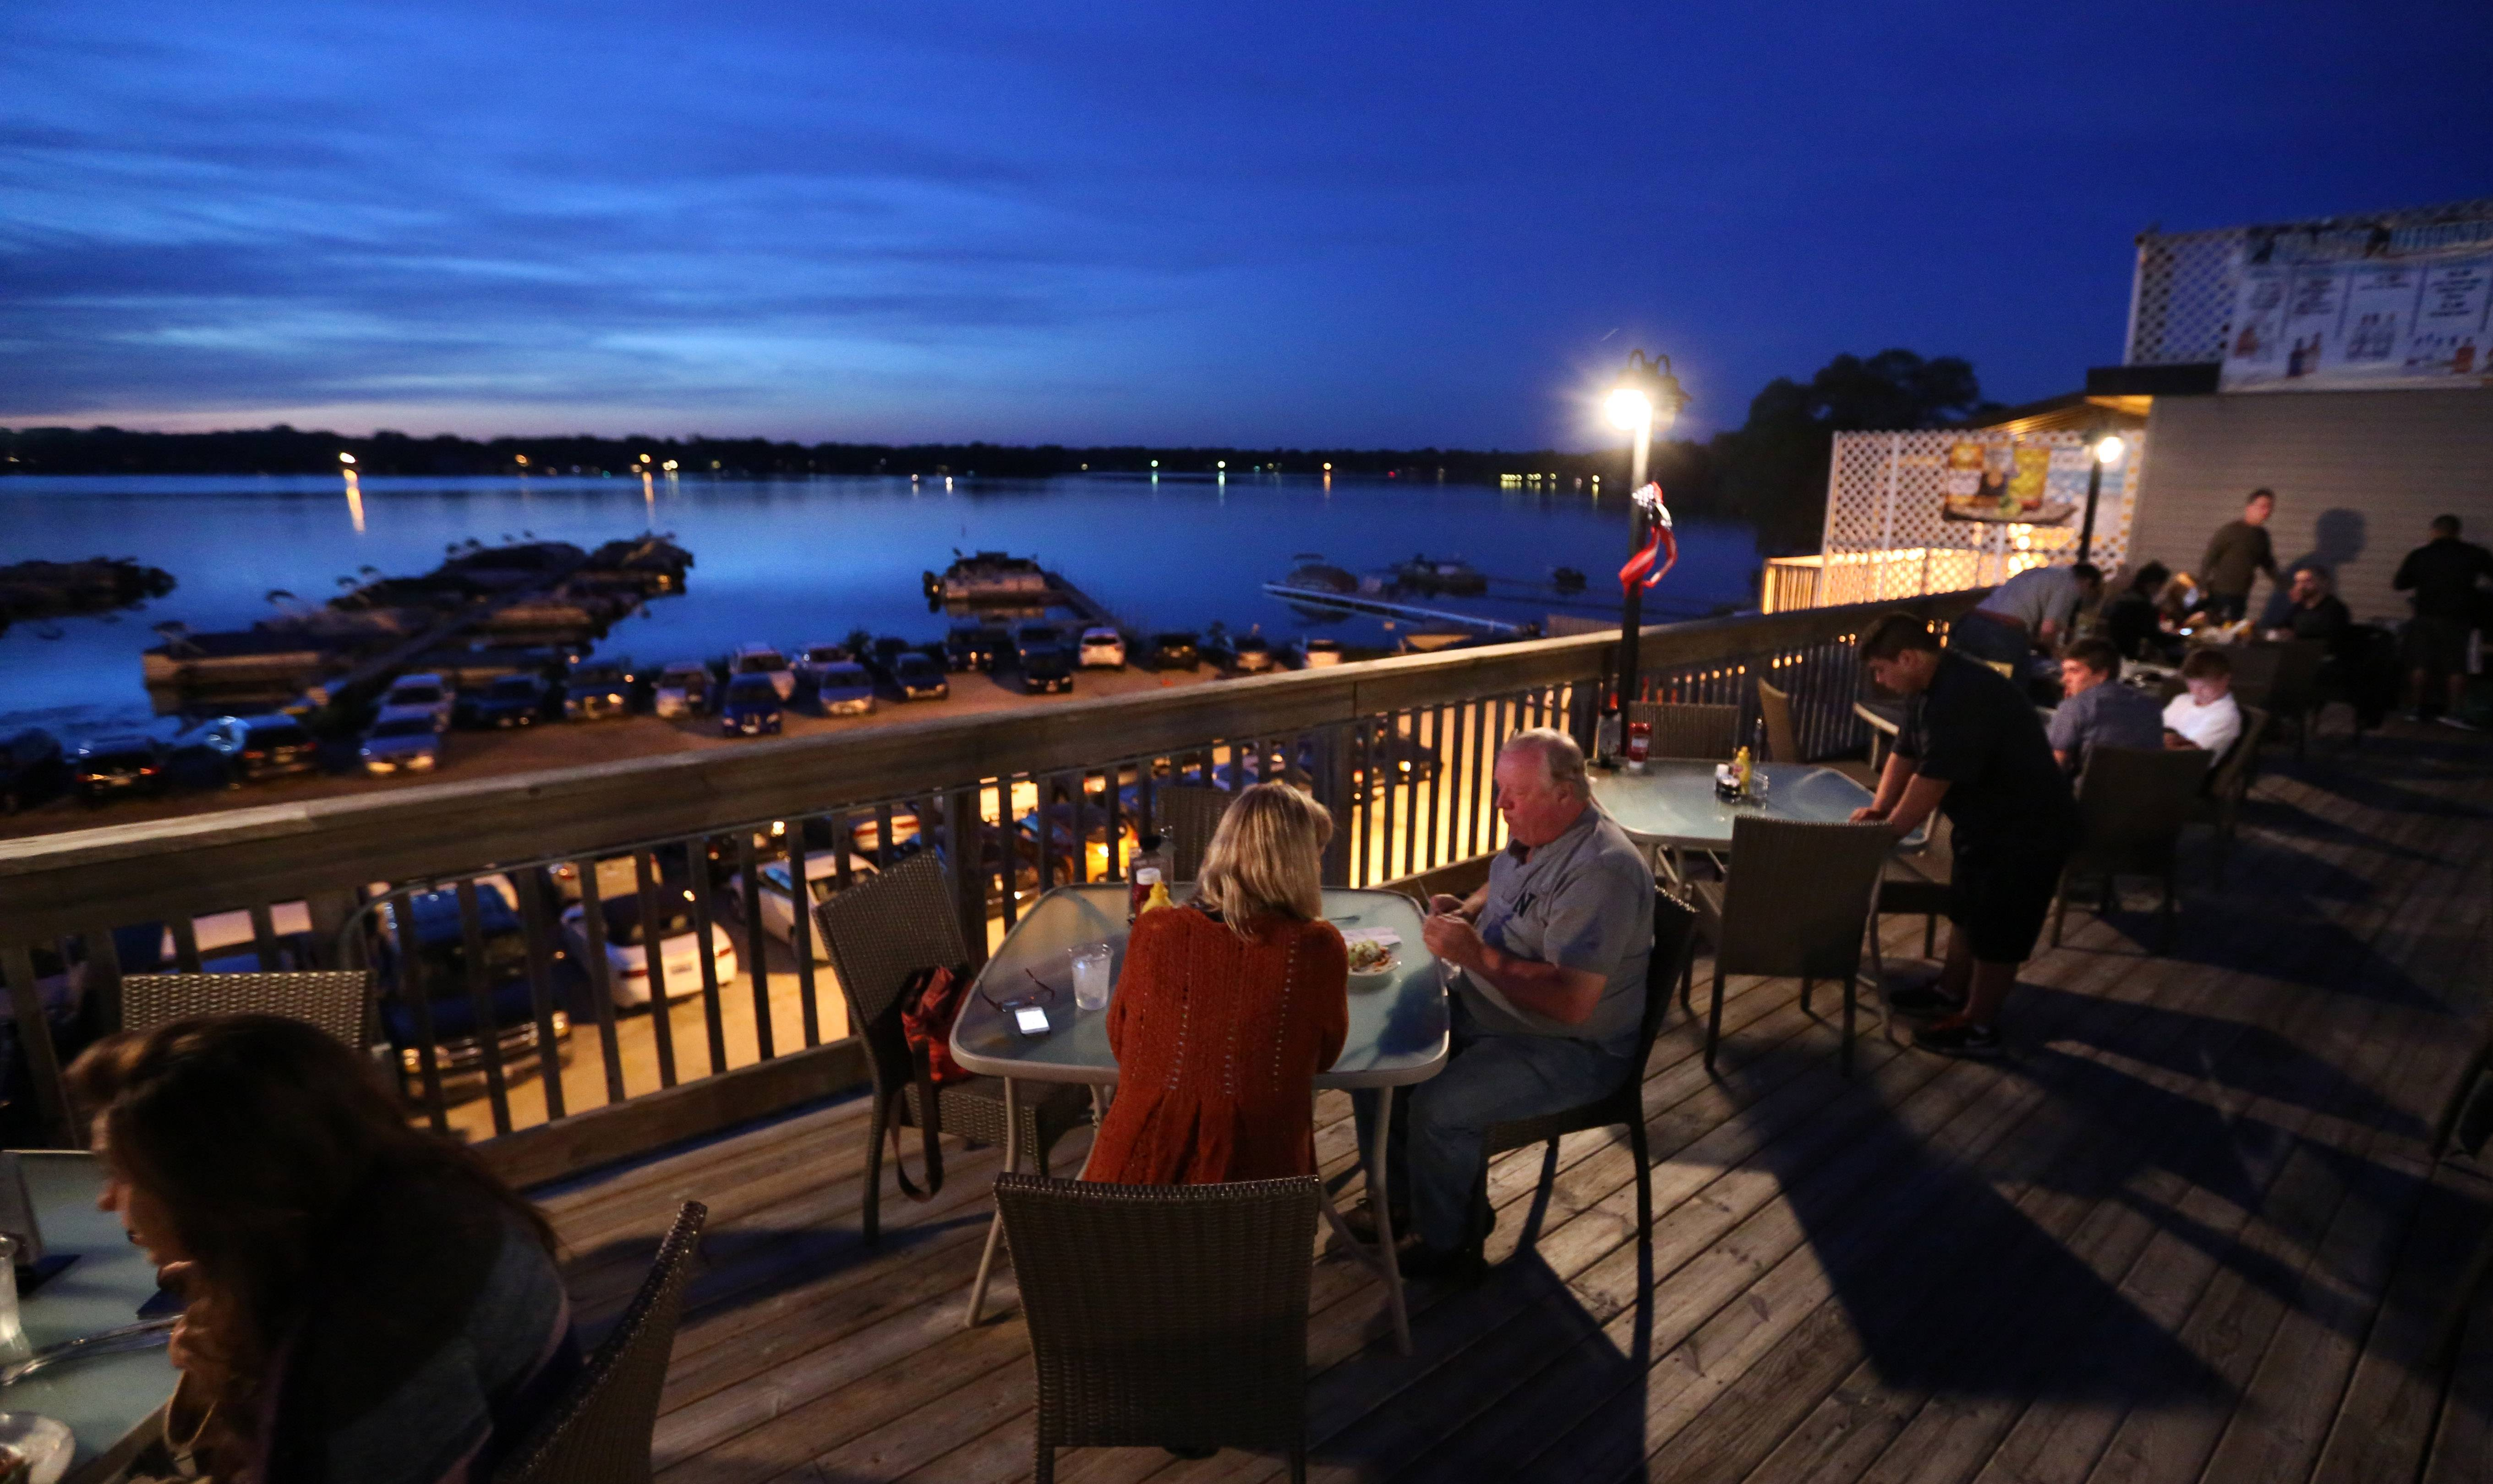 The outdoor dining area overlooking Bangs Lake at Docks Bar and Grill in Wauconda.